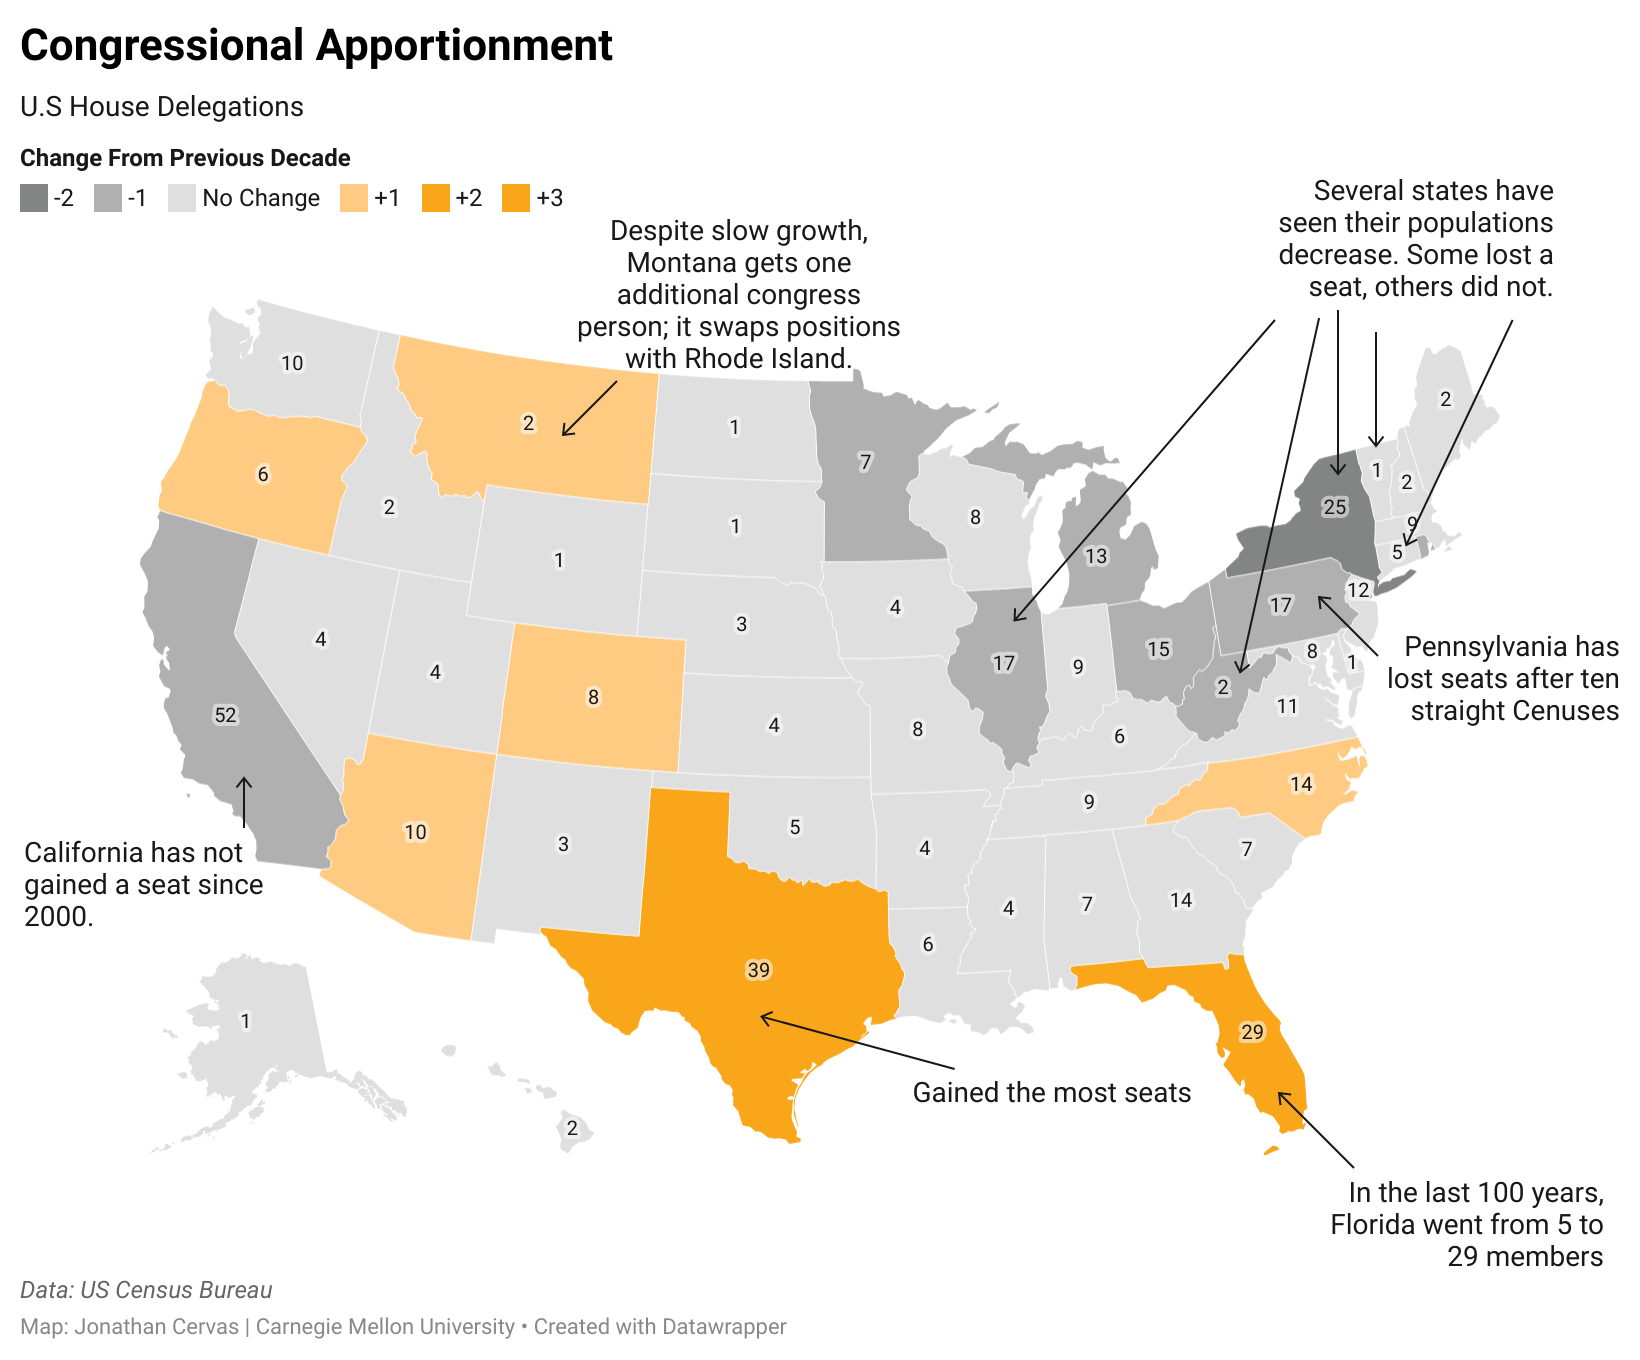 2020 Apportionment